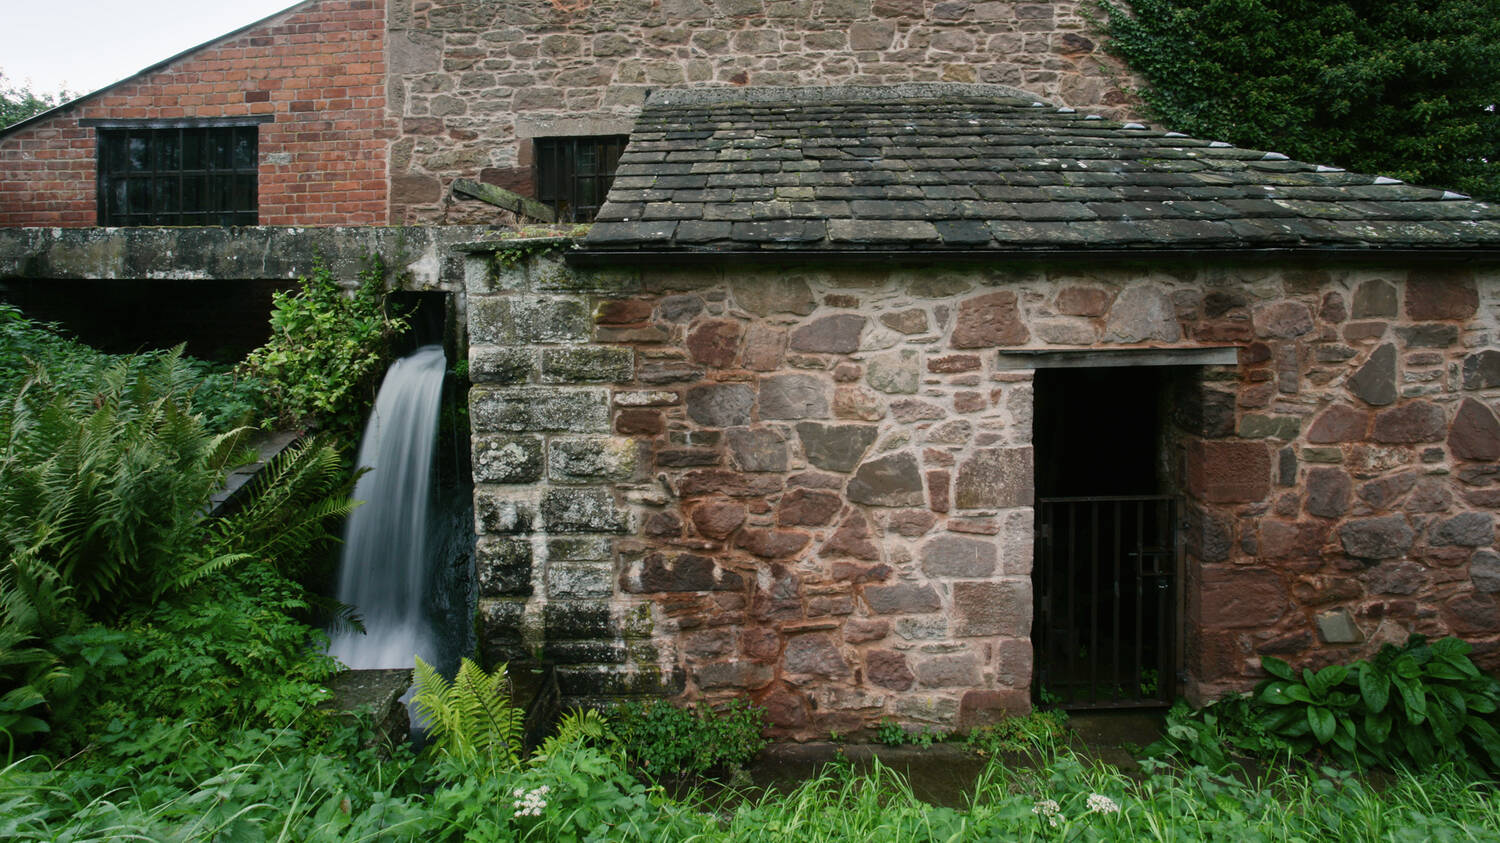 The exterior of the stone Barry Mill with the millrace outflow pouring out at the side.